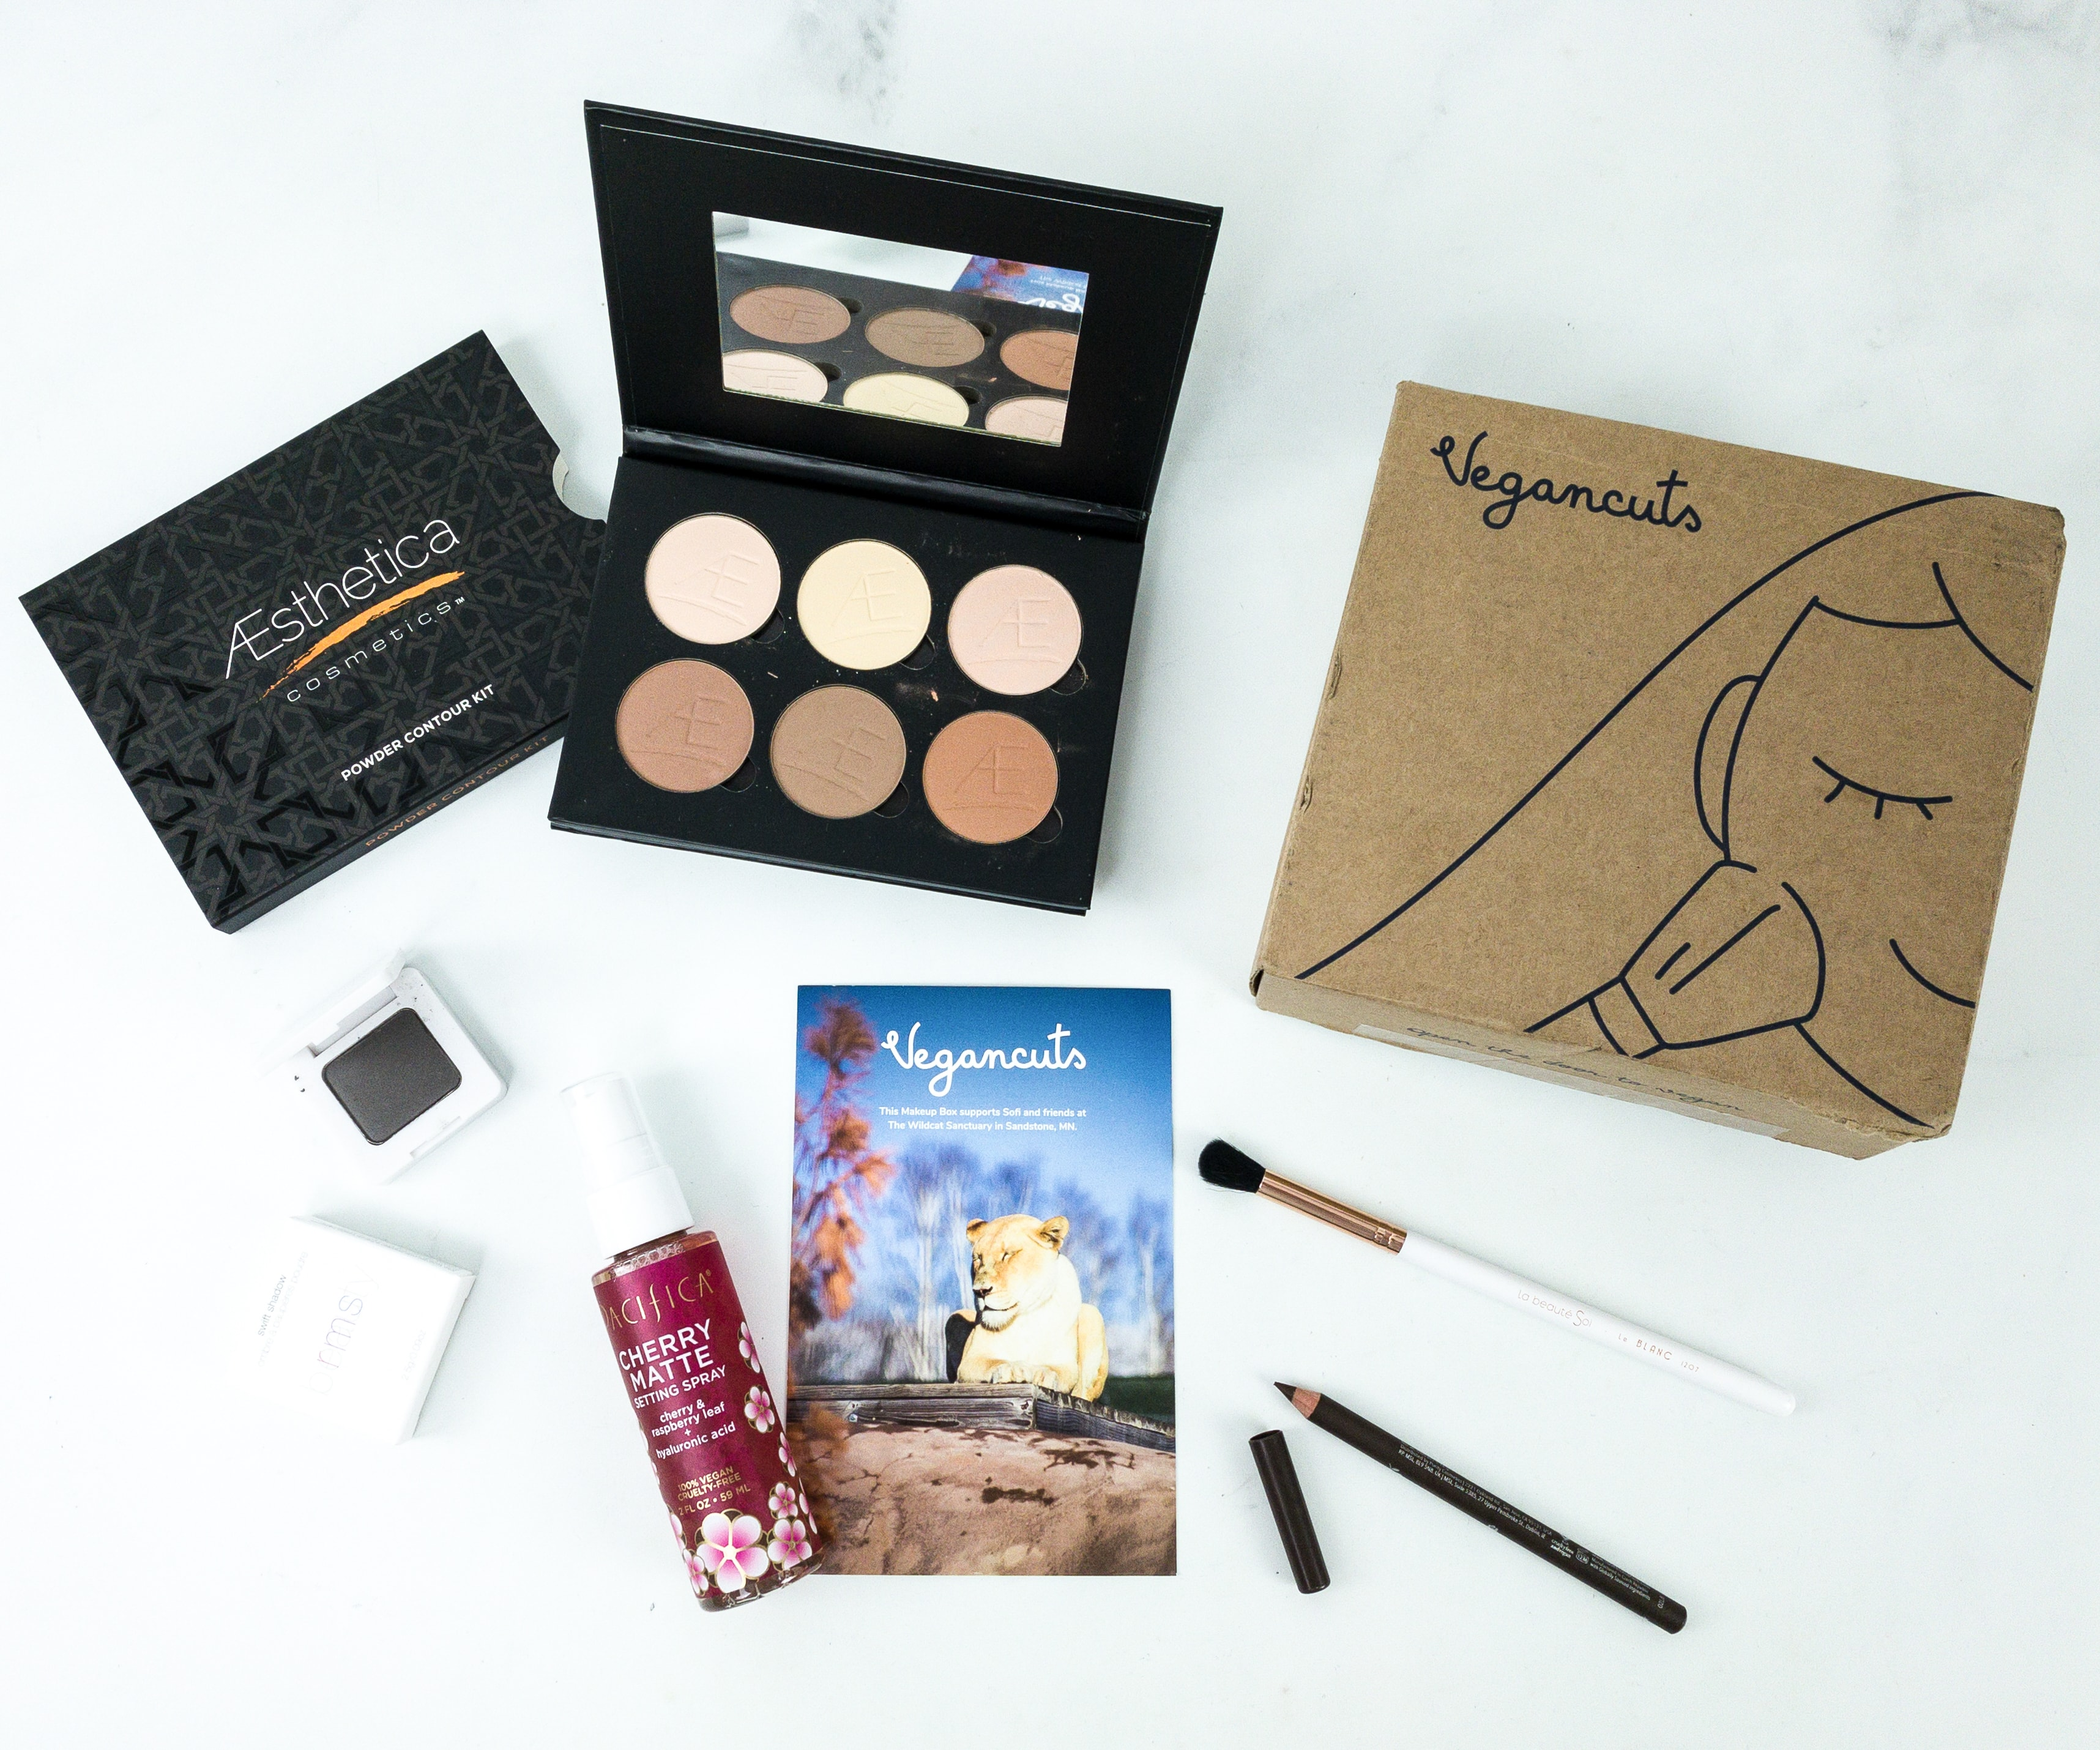 Vegan Cuts Makeup Box Fall 2019 Subscription Box Review